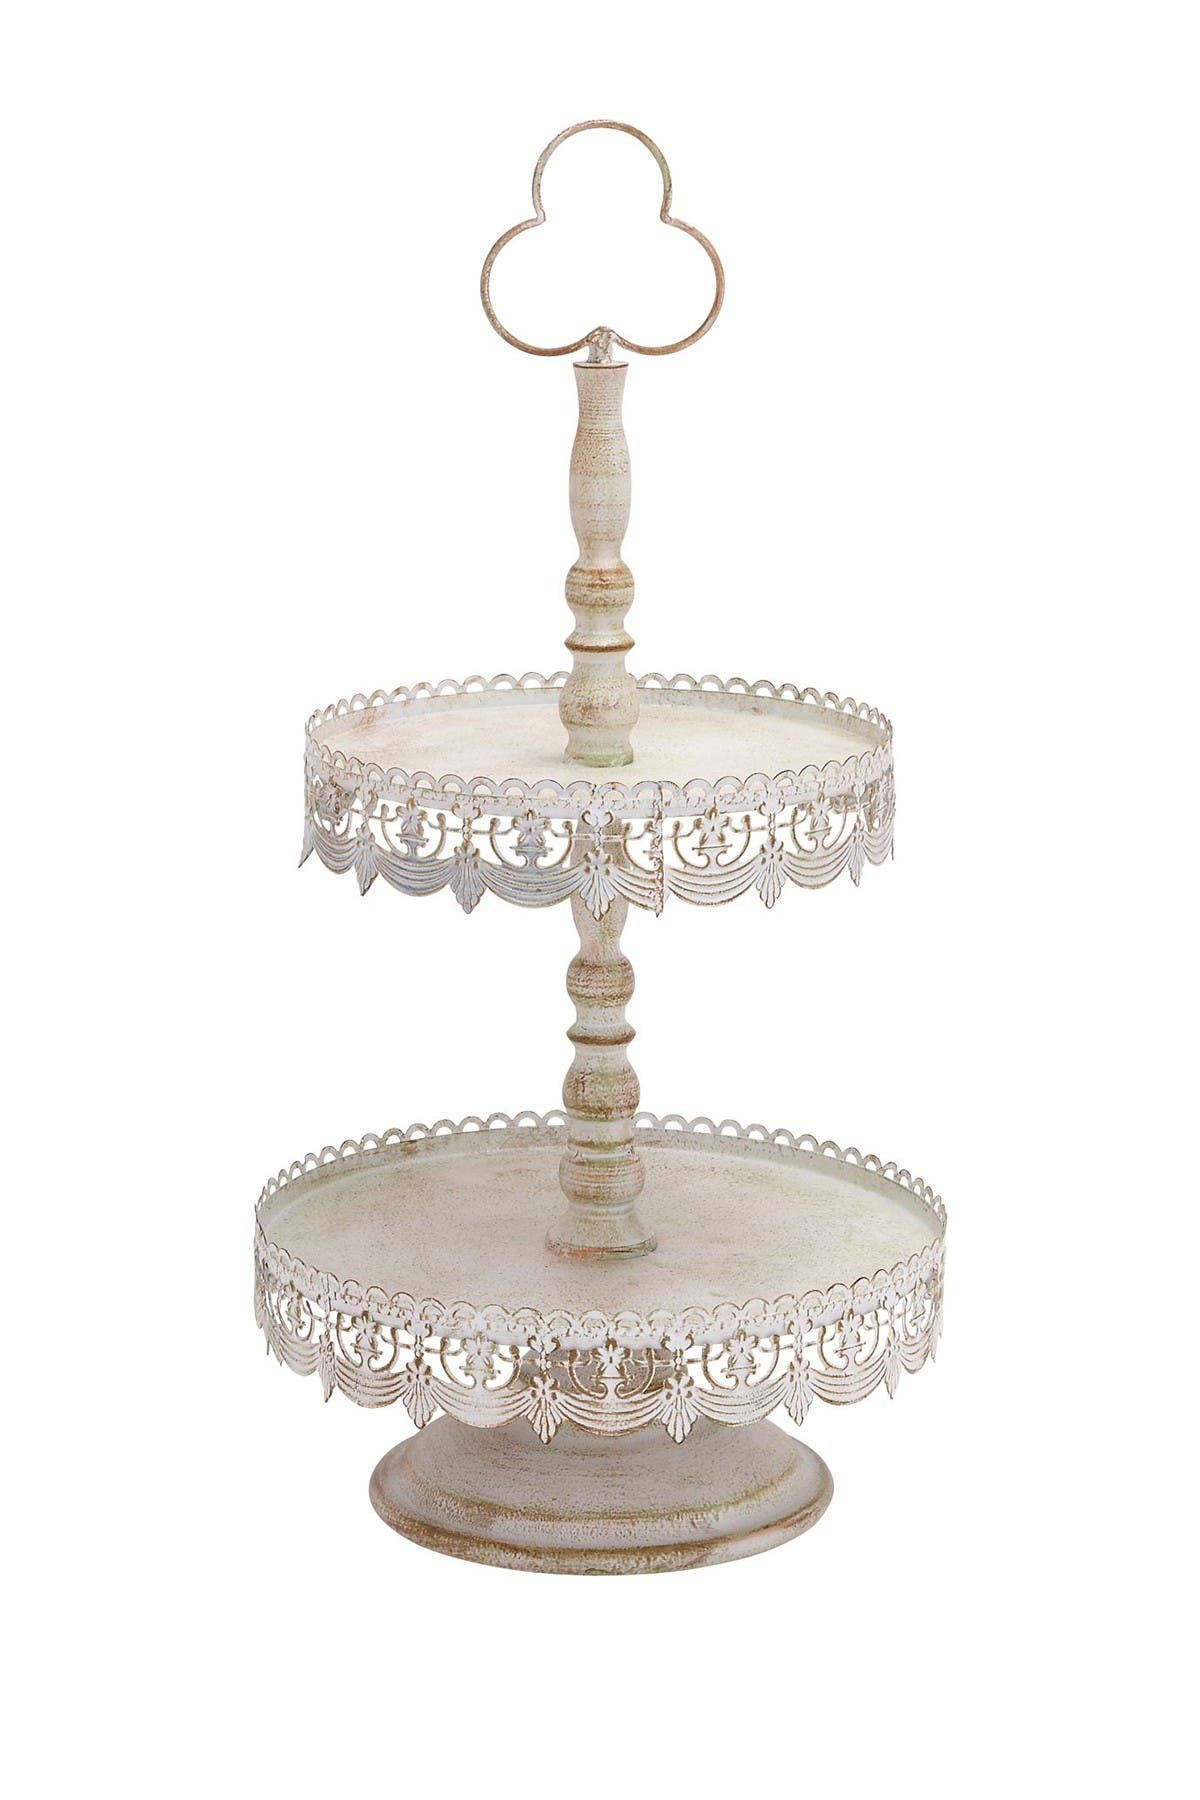 Willow Row Brown/White Metal 2-Tier Tray at Nordstrom Rack